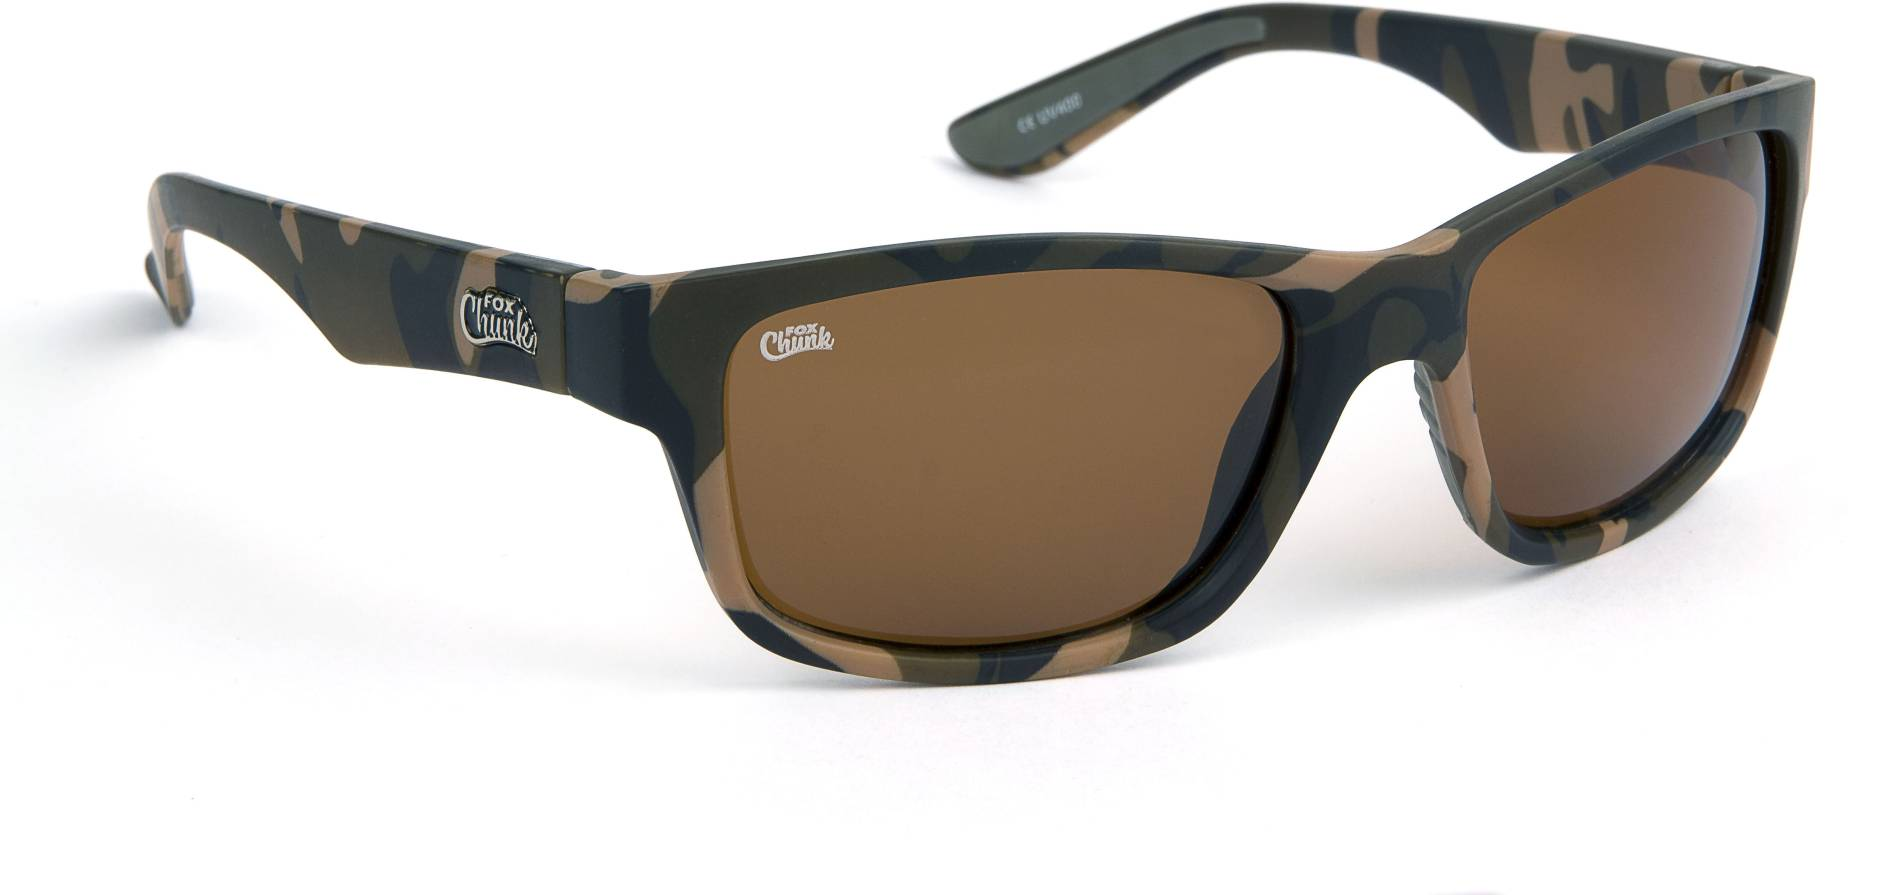 2658fcd31d78 ... options available: camo frame/brown lens, khaki frame/grey lens and  tortoise frame/brown lens - All models feature polarized TAC Impact  Resistant lenses